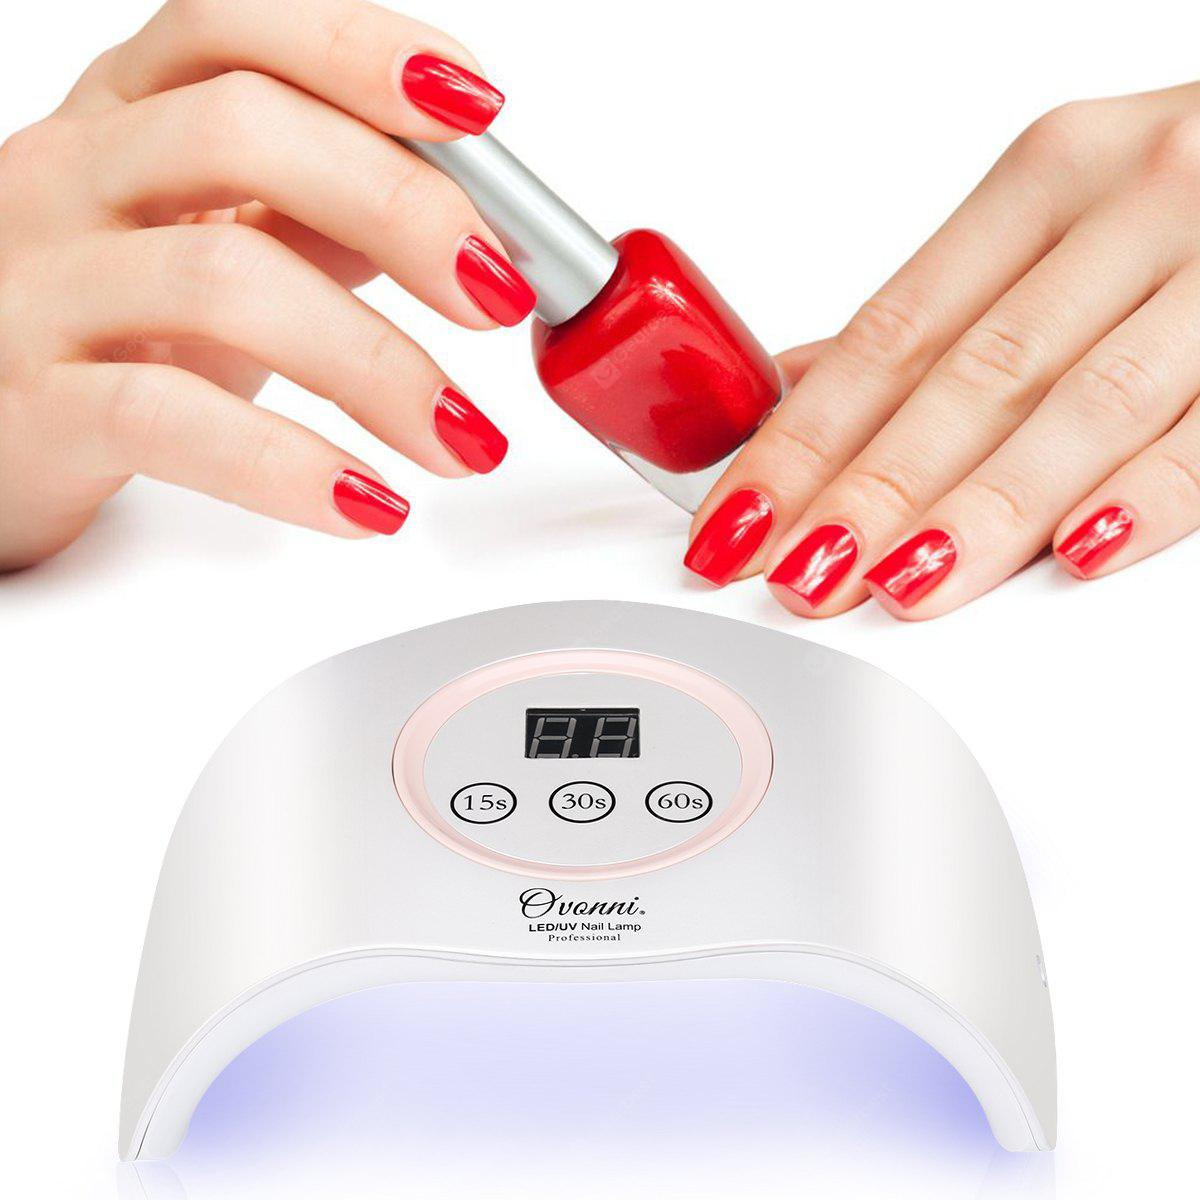 Ovonni Nail Dryer UV LED Nail Lamp, Built-In Auto On/Off Sensor, 3 Timers Fast Curing Nail polishes & Gel Nail Polishes, Pearl White/ Pink - WHITE